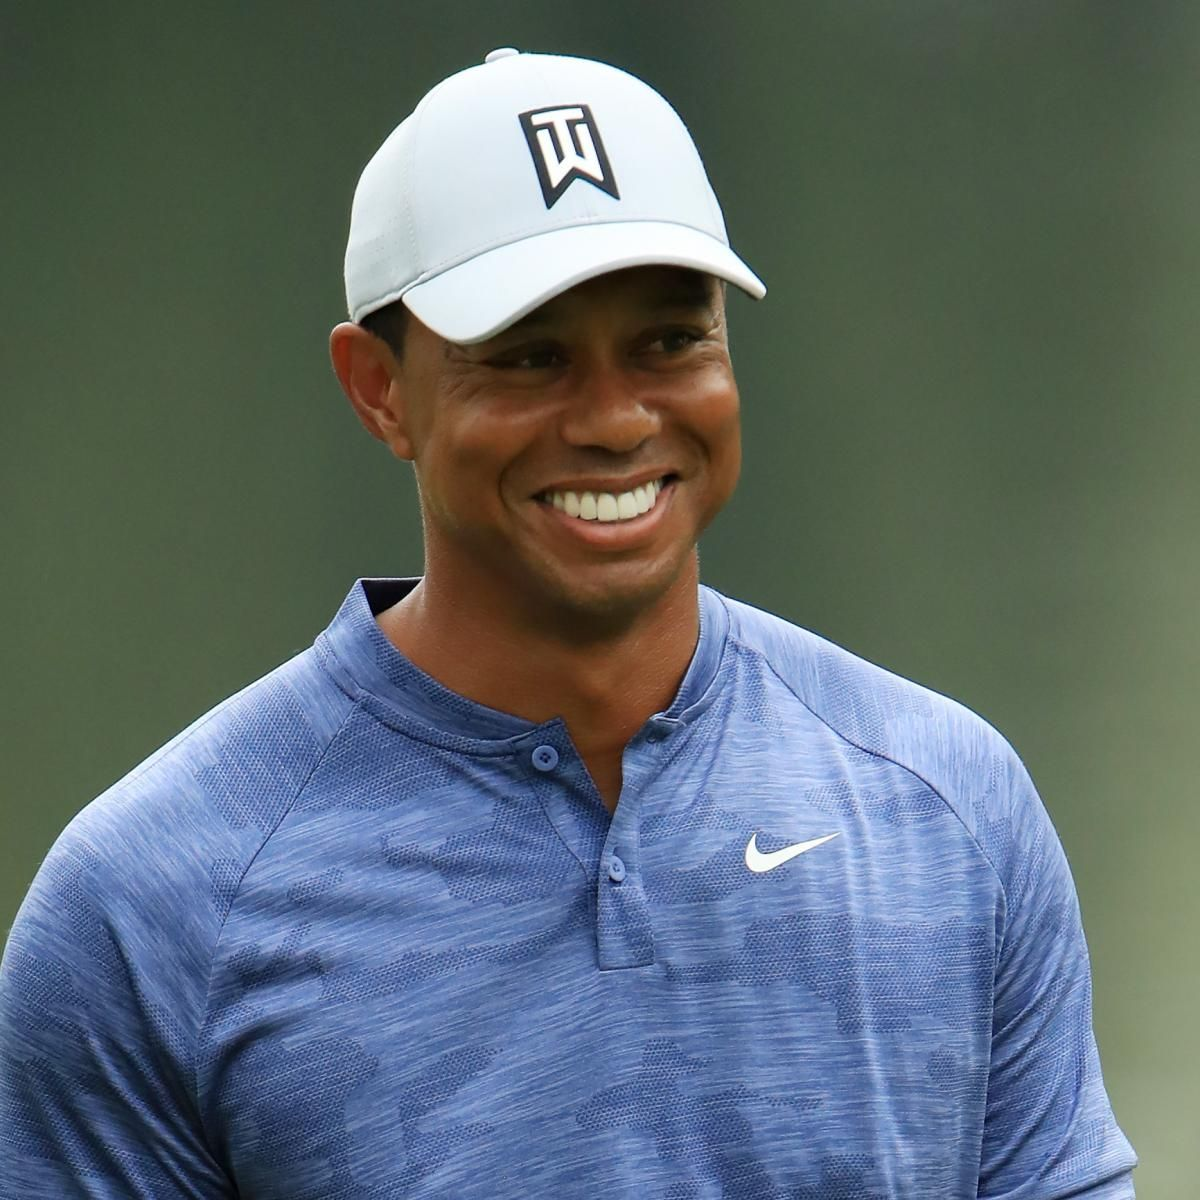 Bettor Places 85K on Tiger Woods to Win Masters at 141